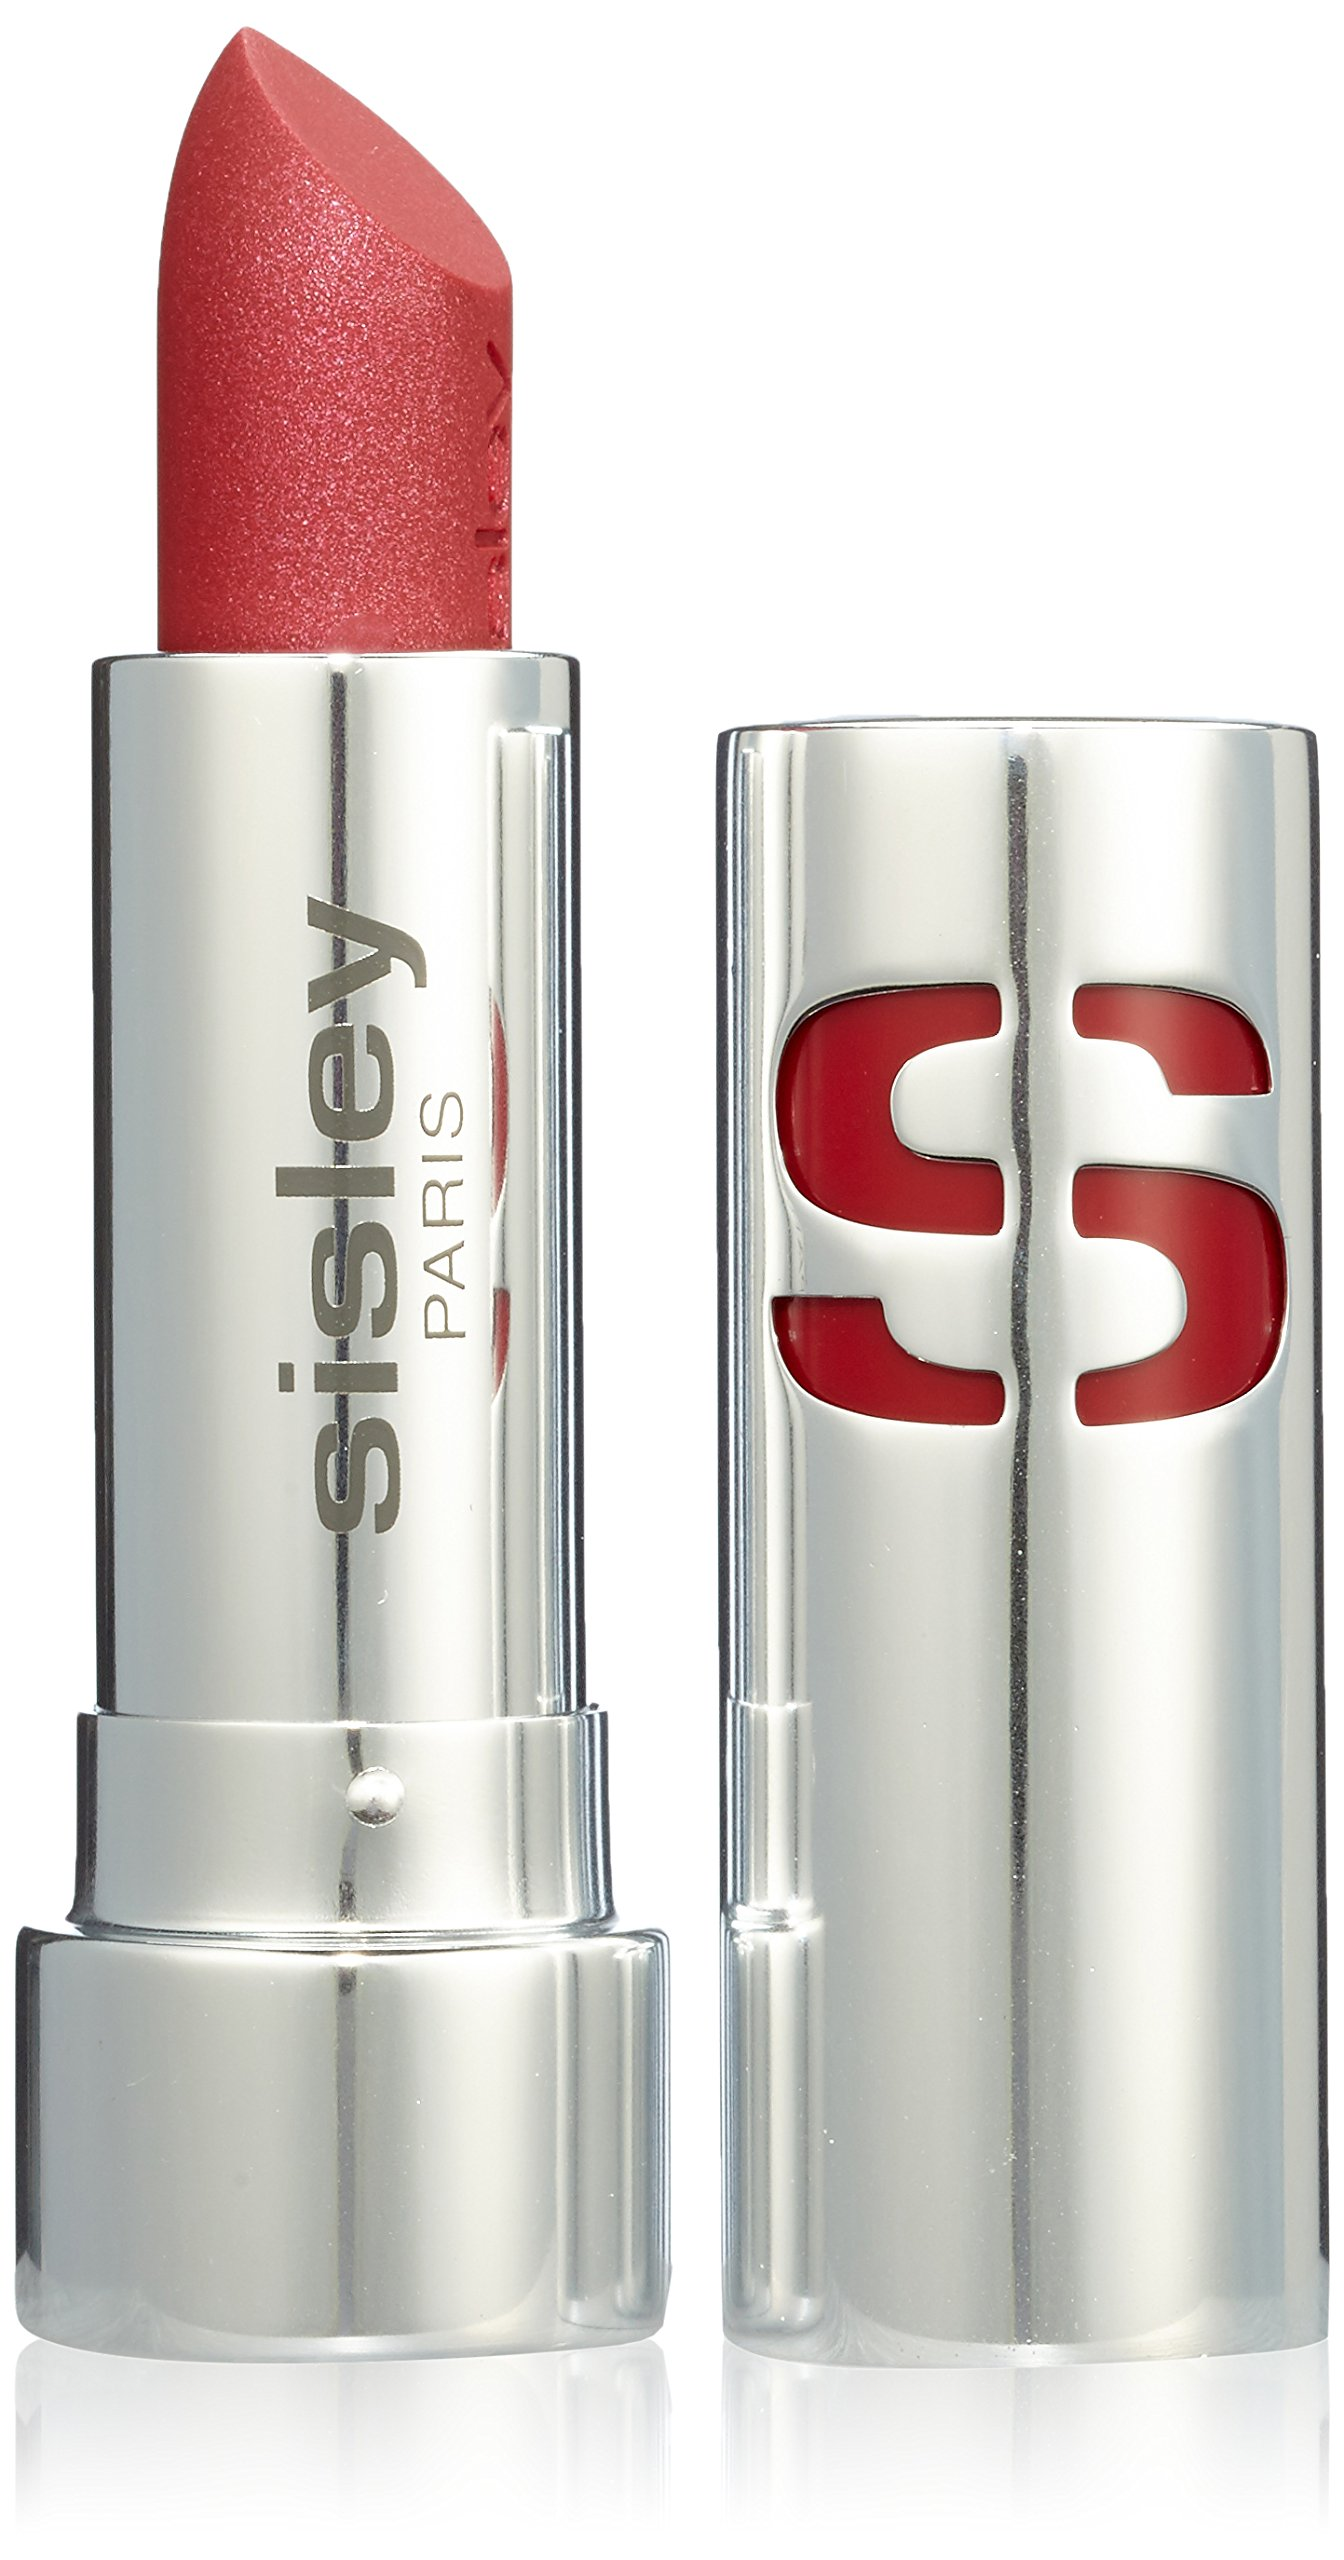 Sisley Phyto Lip Shine - # 5 Sheer Raspberry By Sisley for Women - 0.1 Oz Lipstick, 5/sheer Raspberry, 0.1 Ounce